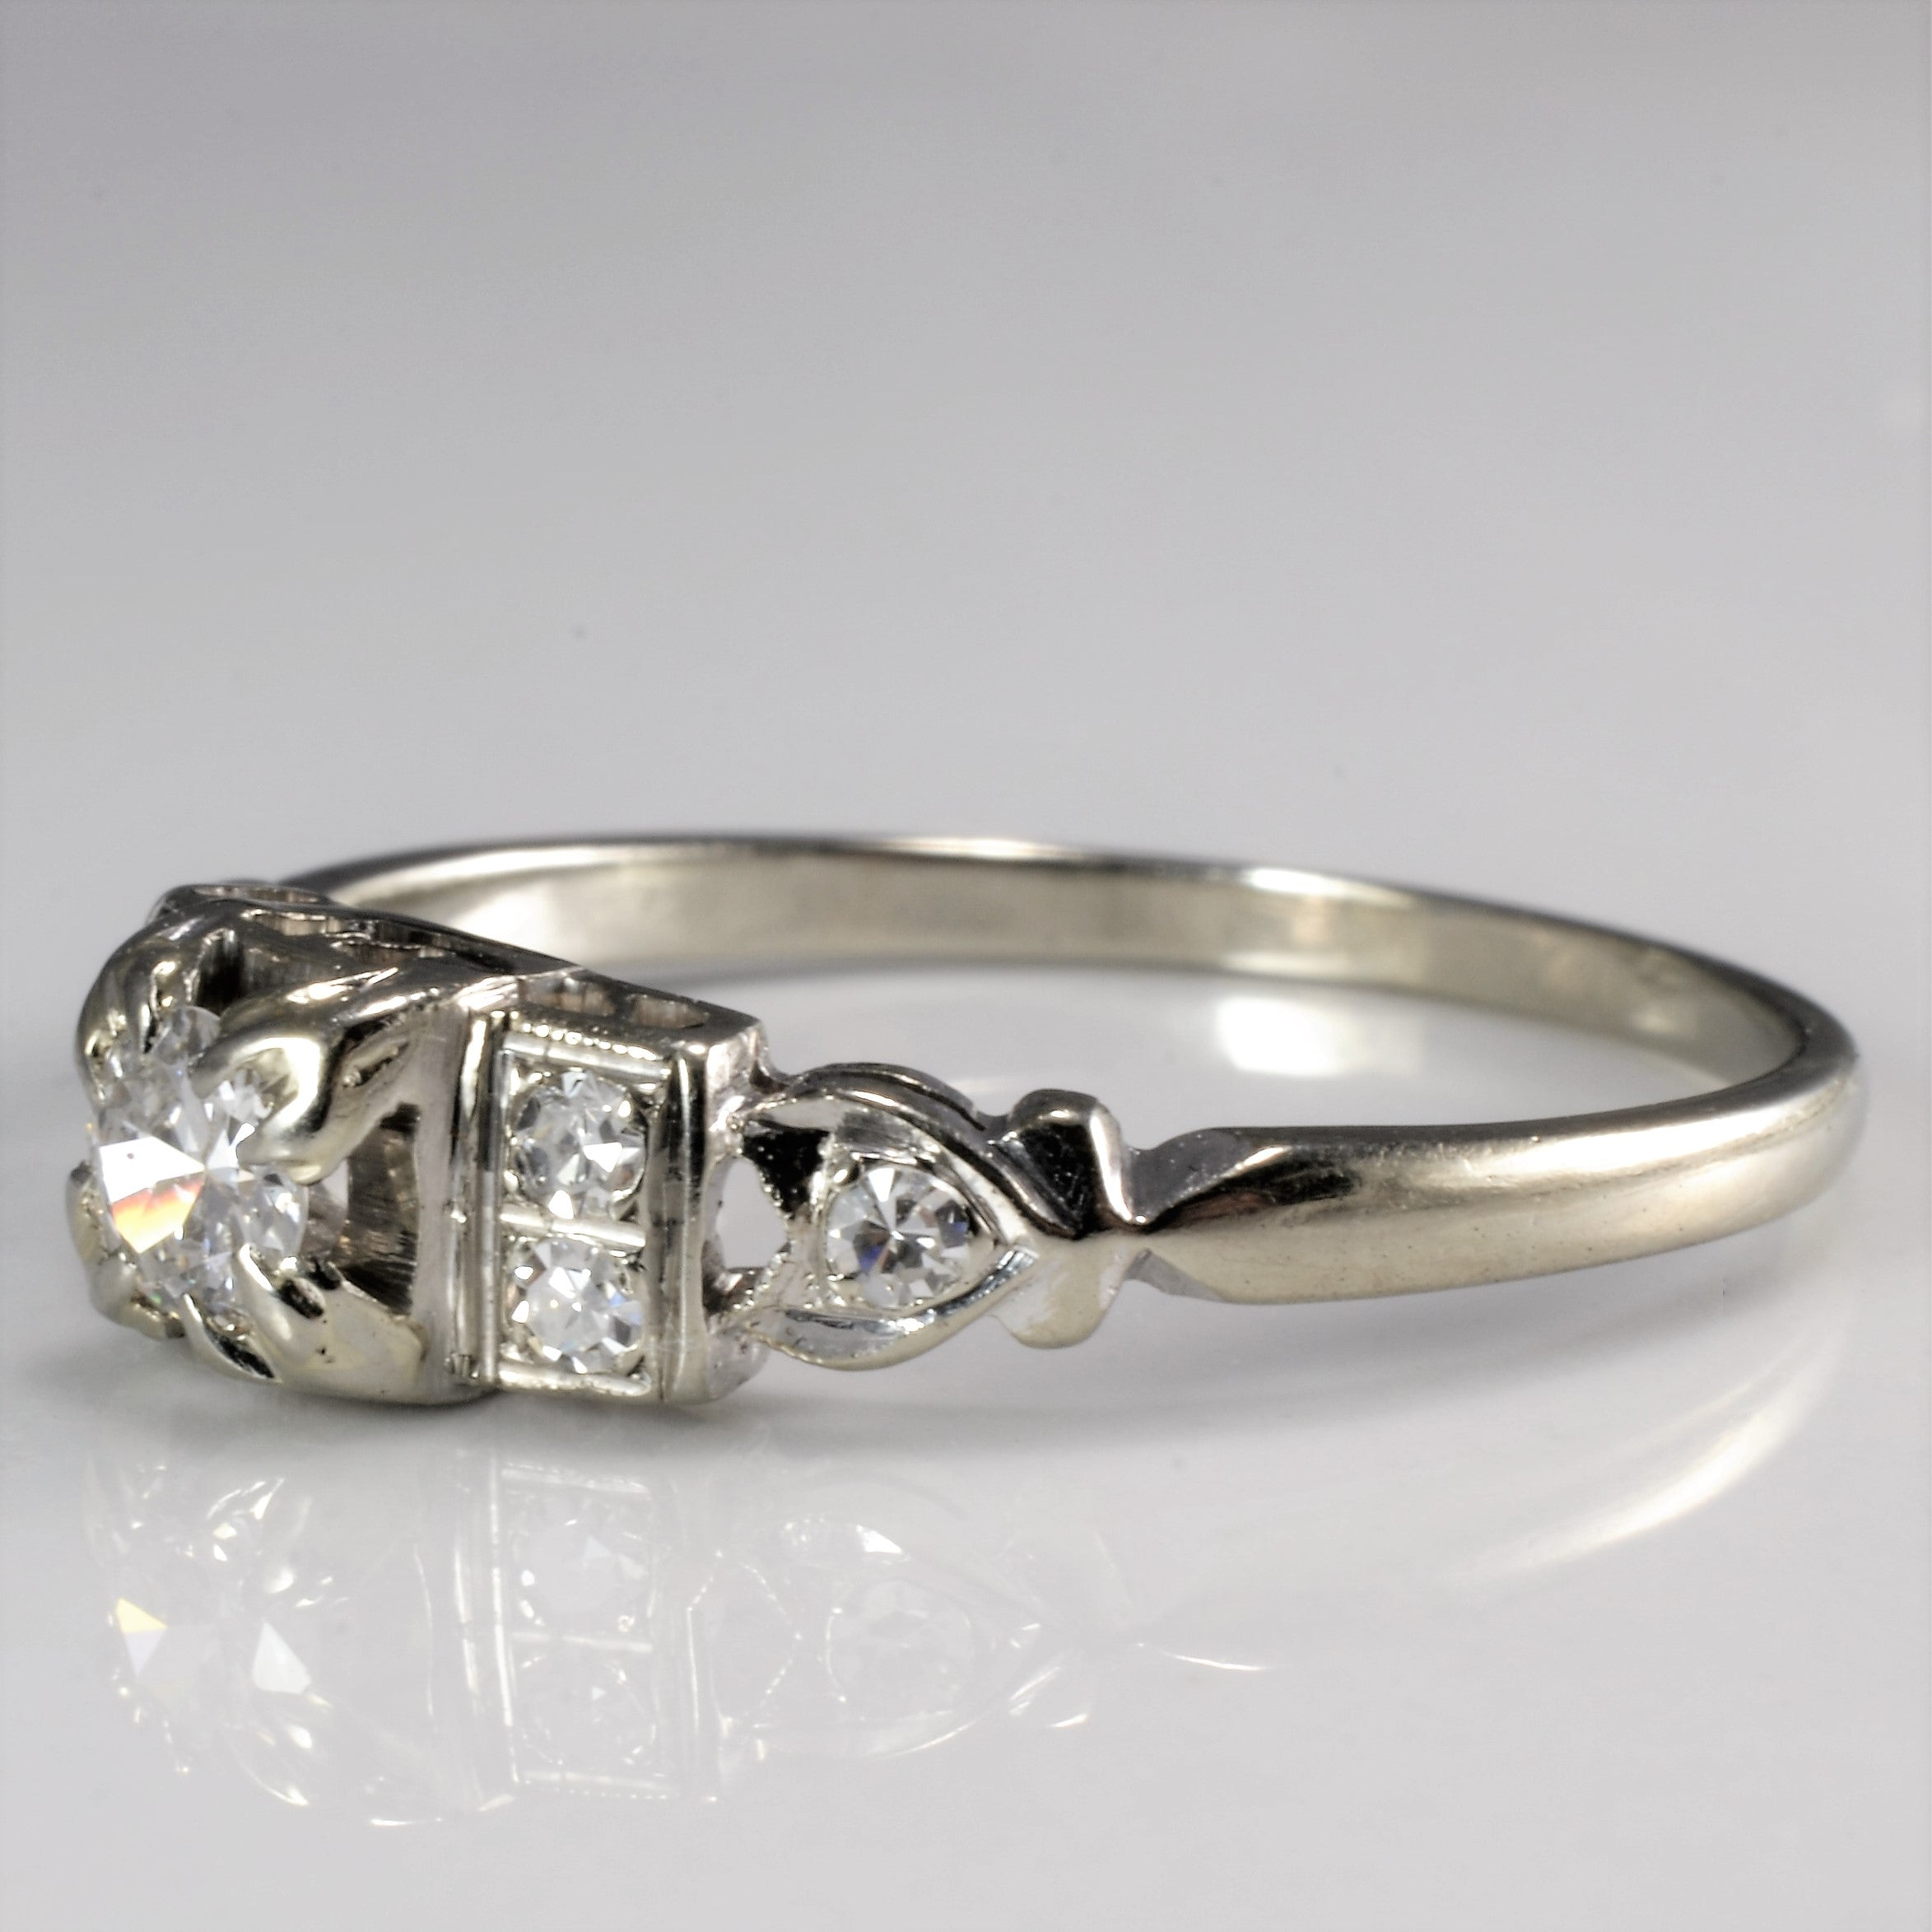 plating company rings engagement grandis rhodium jewellery metal